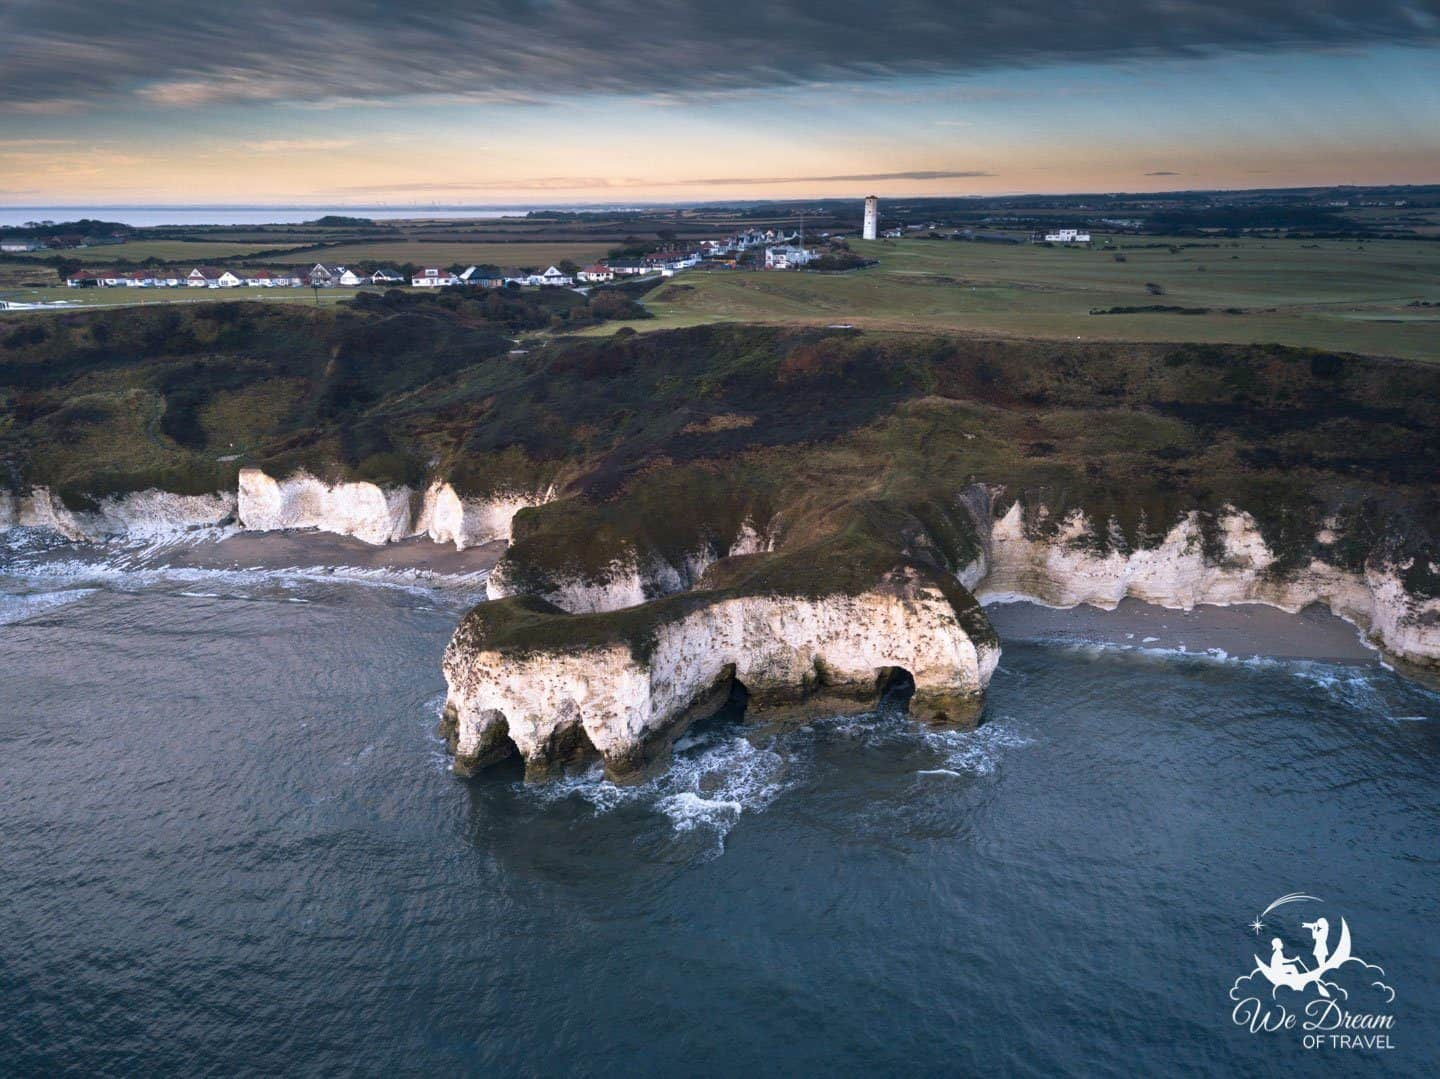 Flamborough Cliffs from a drone